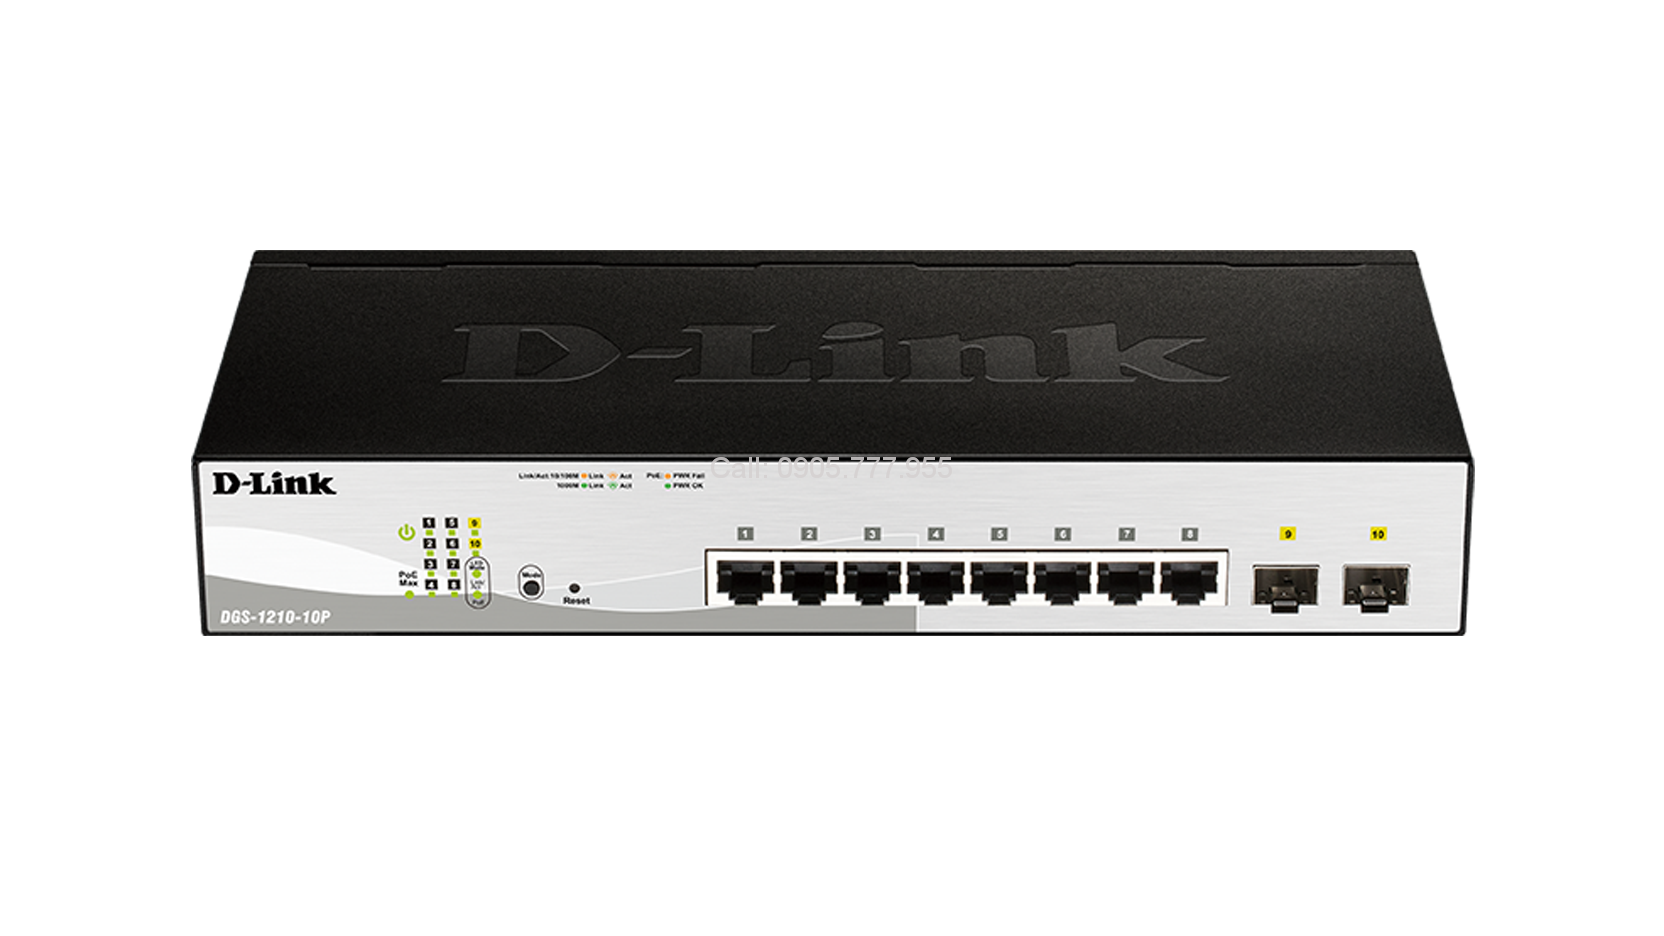 Switch D-Link 8 Port 10/100/1000Mbps + 2 Slot SFP (DGS-1210-10P)